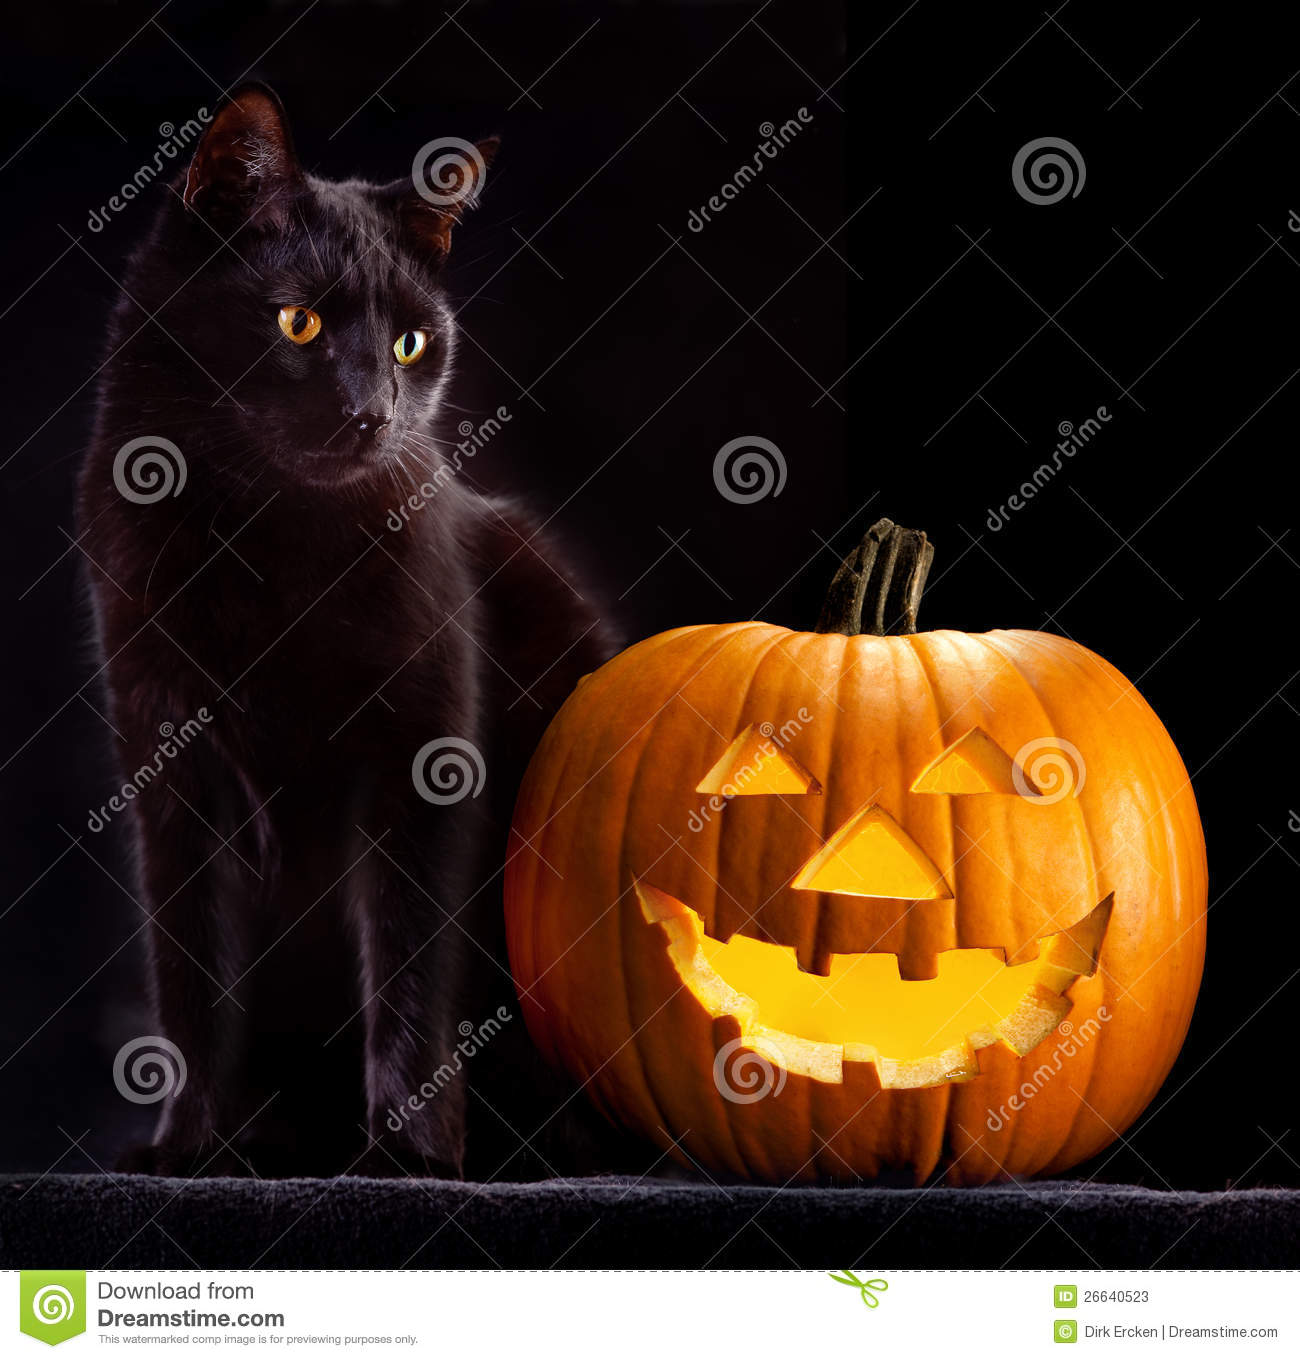 Marvelous Halloween Pumpkin Head And Black Cat